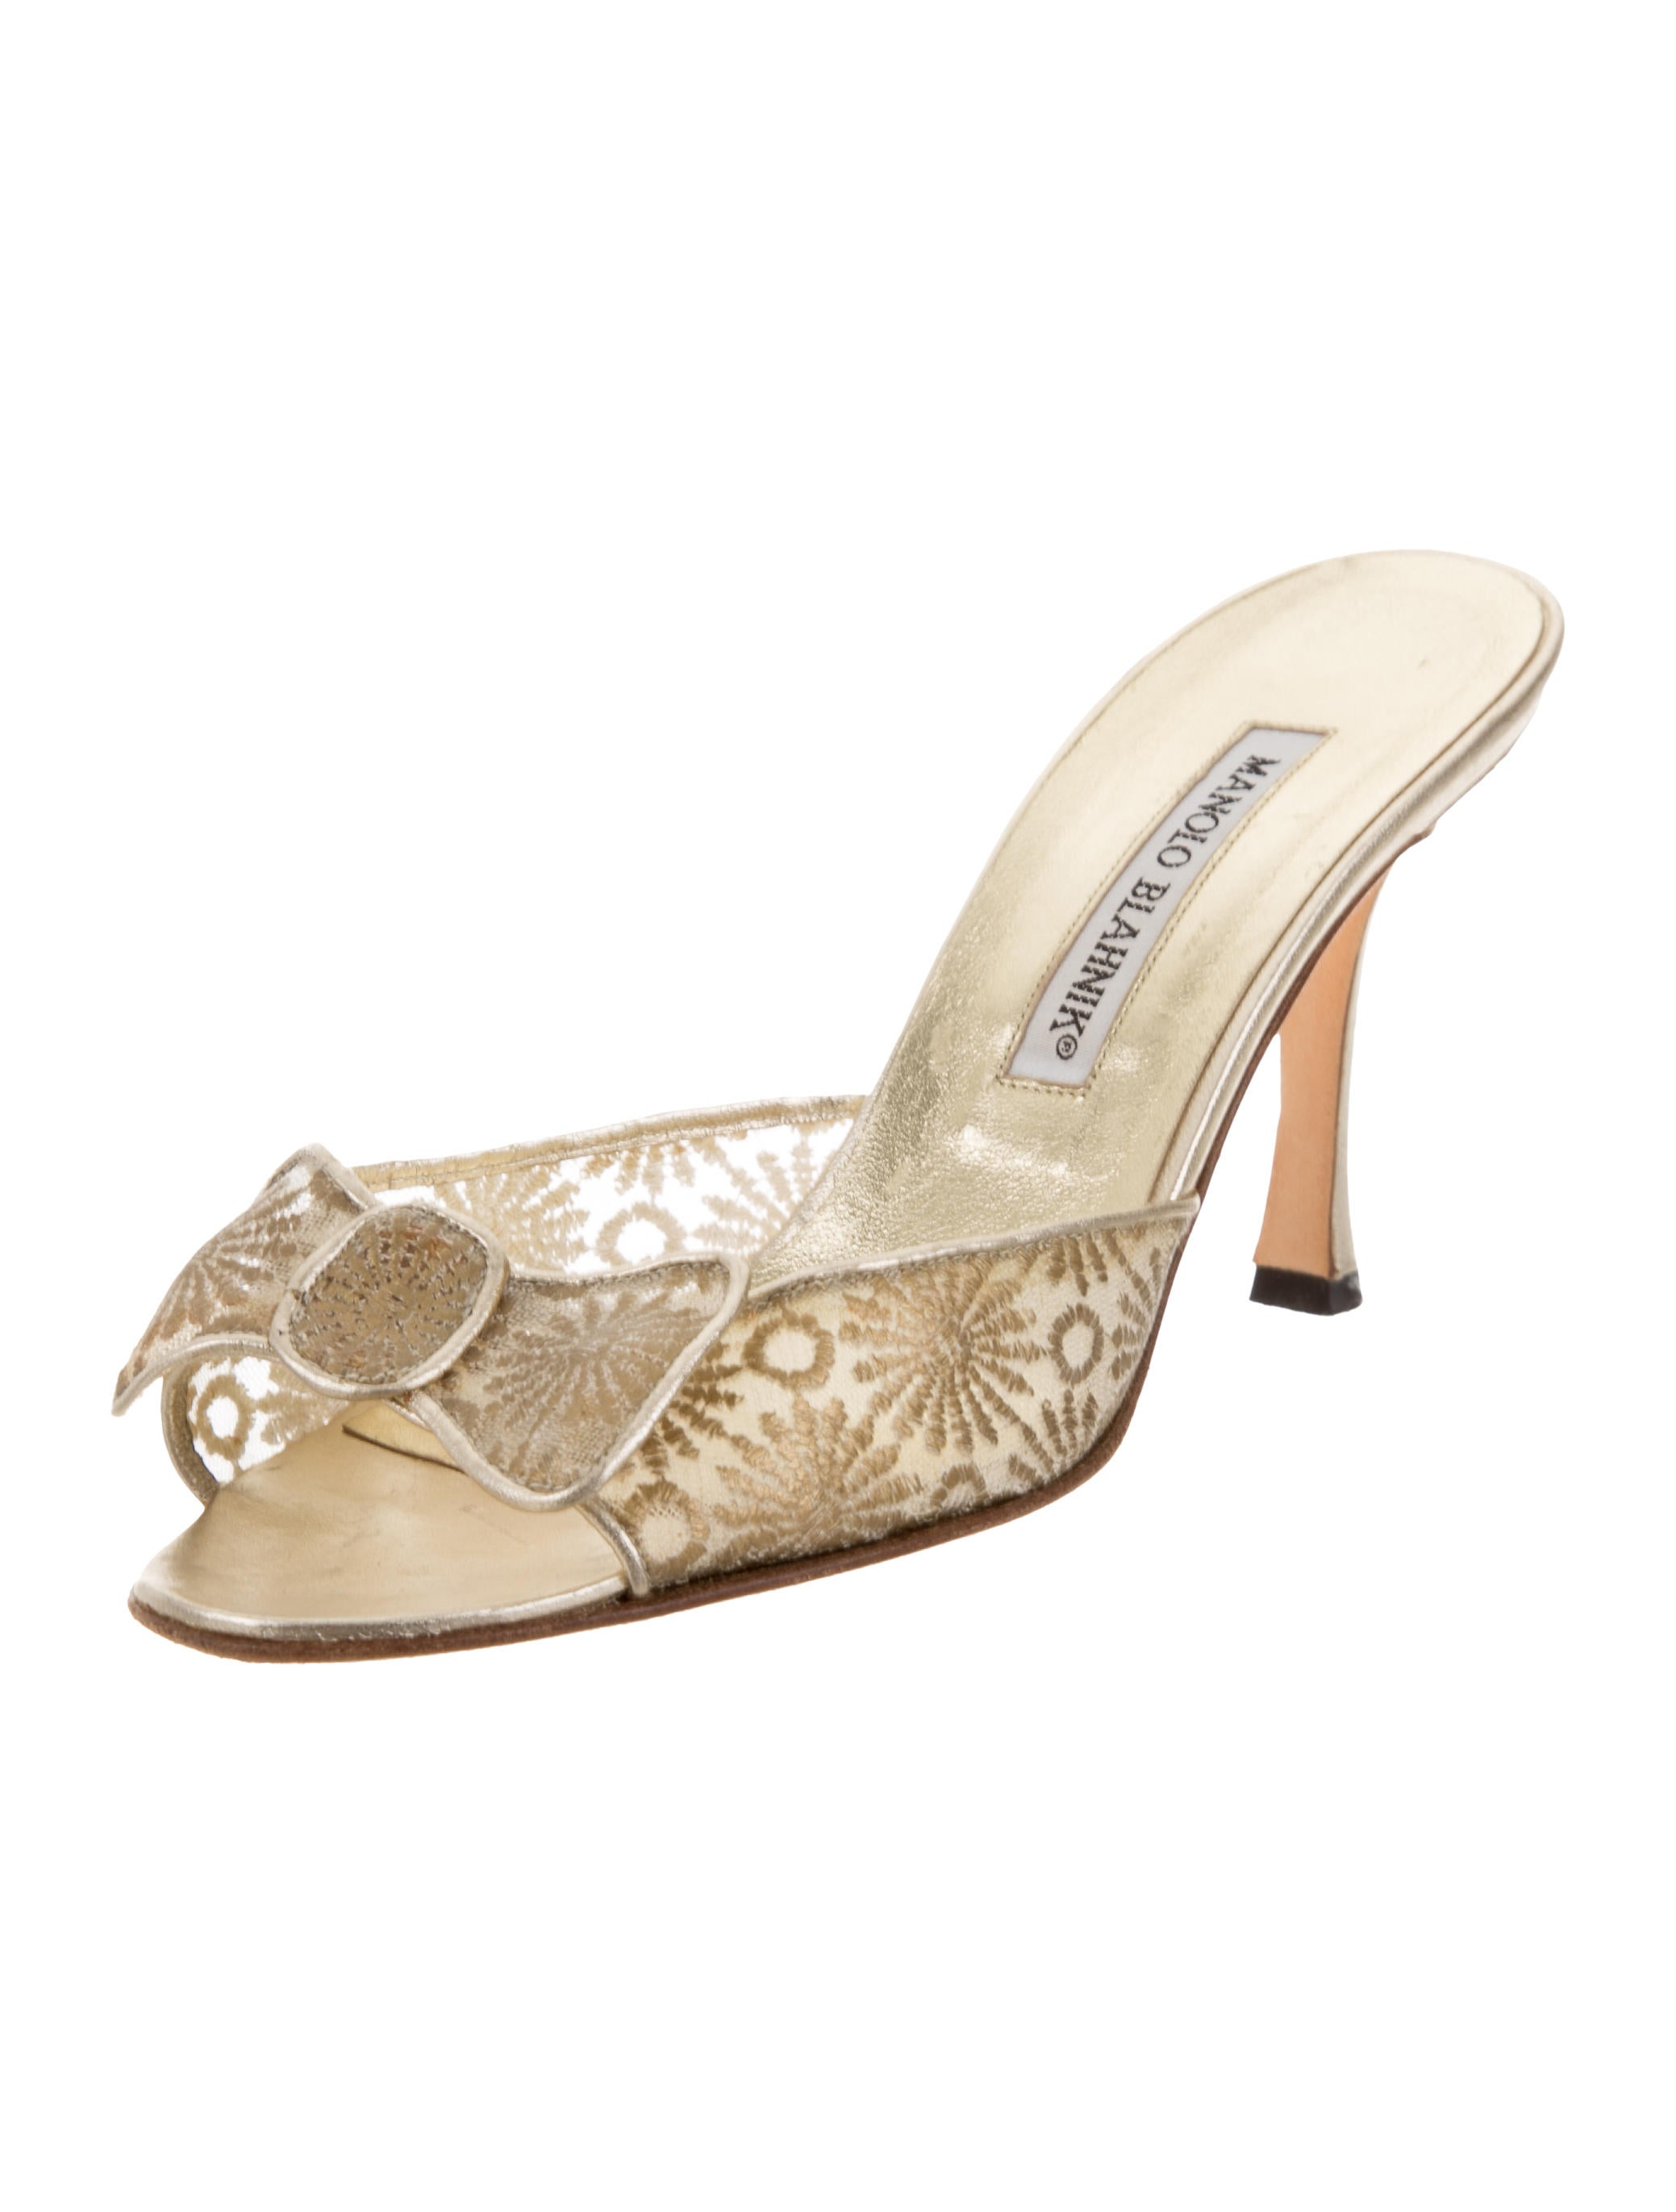 Manolo Blahnik Mesh Slide Sandals sale best store to get outlet low price buy cheap factory outlet high quality sale online discount wiki W1rqWz